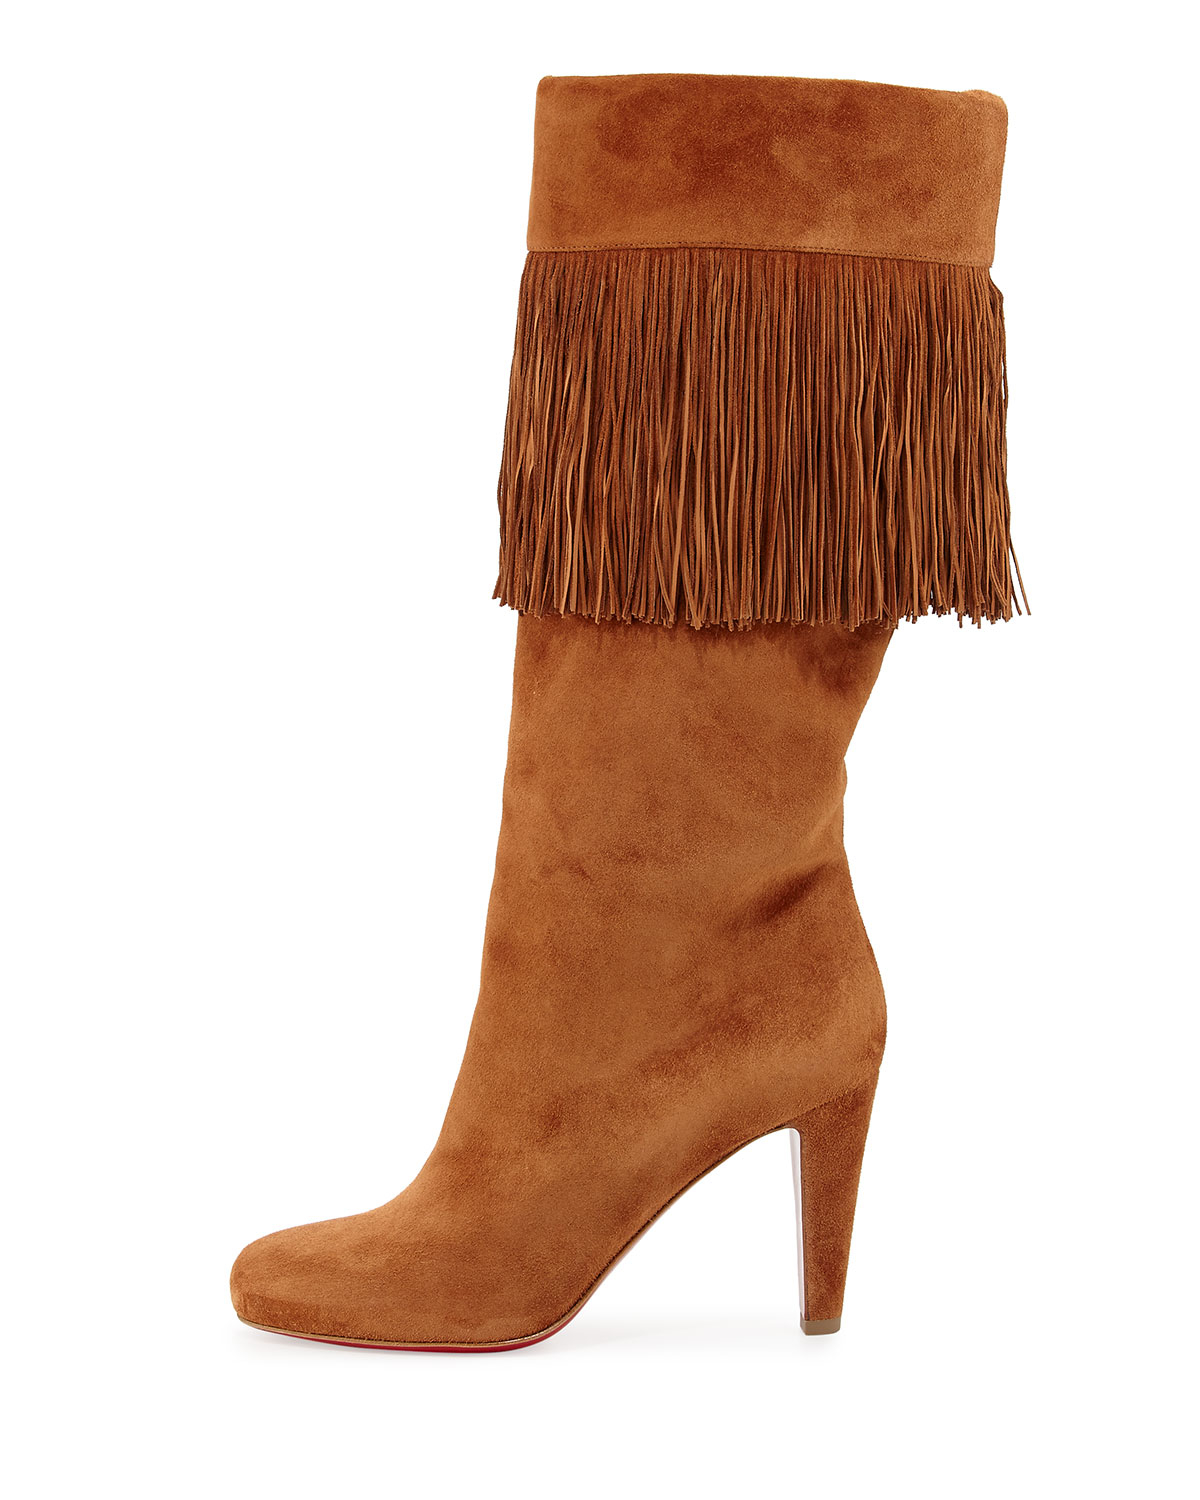 christian louboutins replica shoes - christian louboutin round-toe ankle boots Tan suede | cosmetics ...